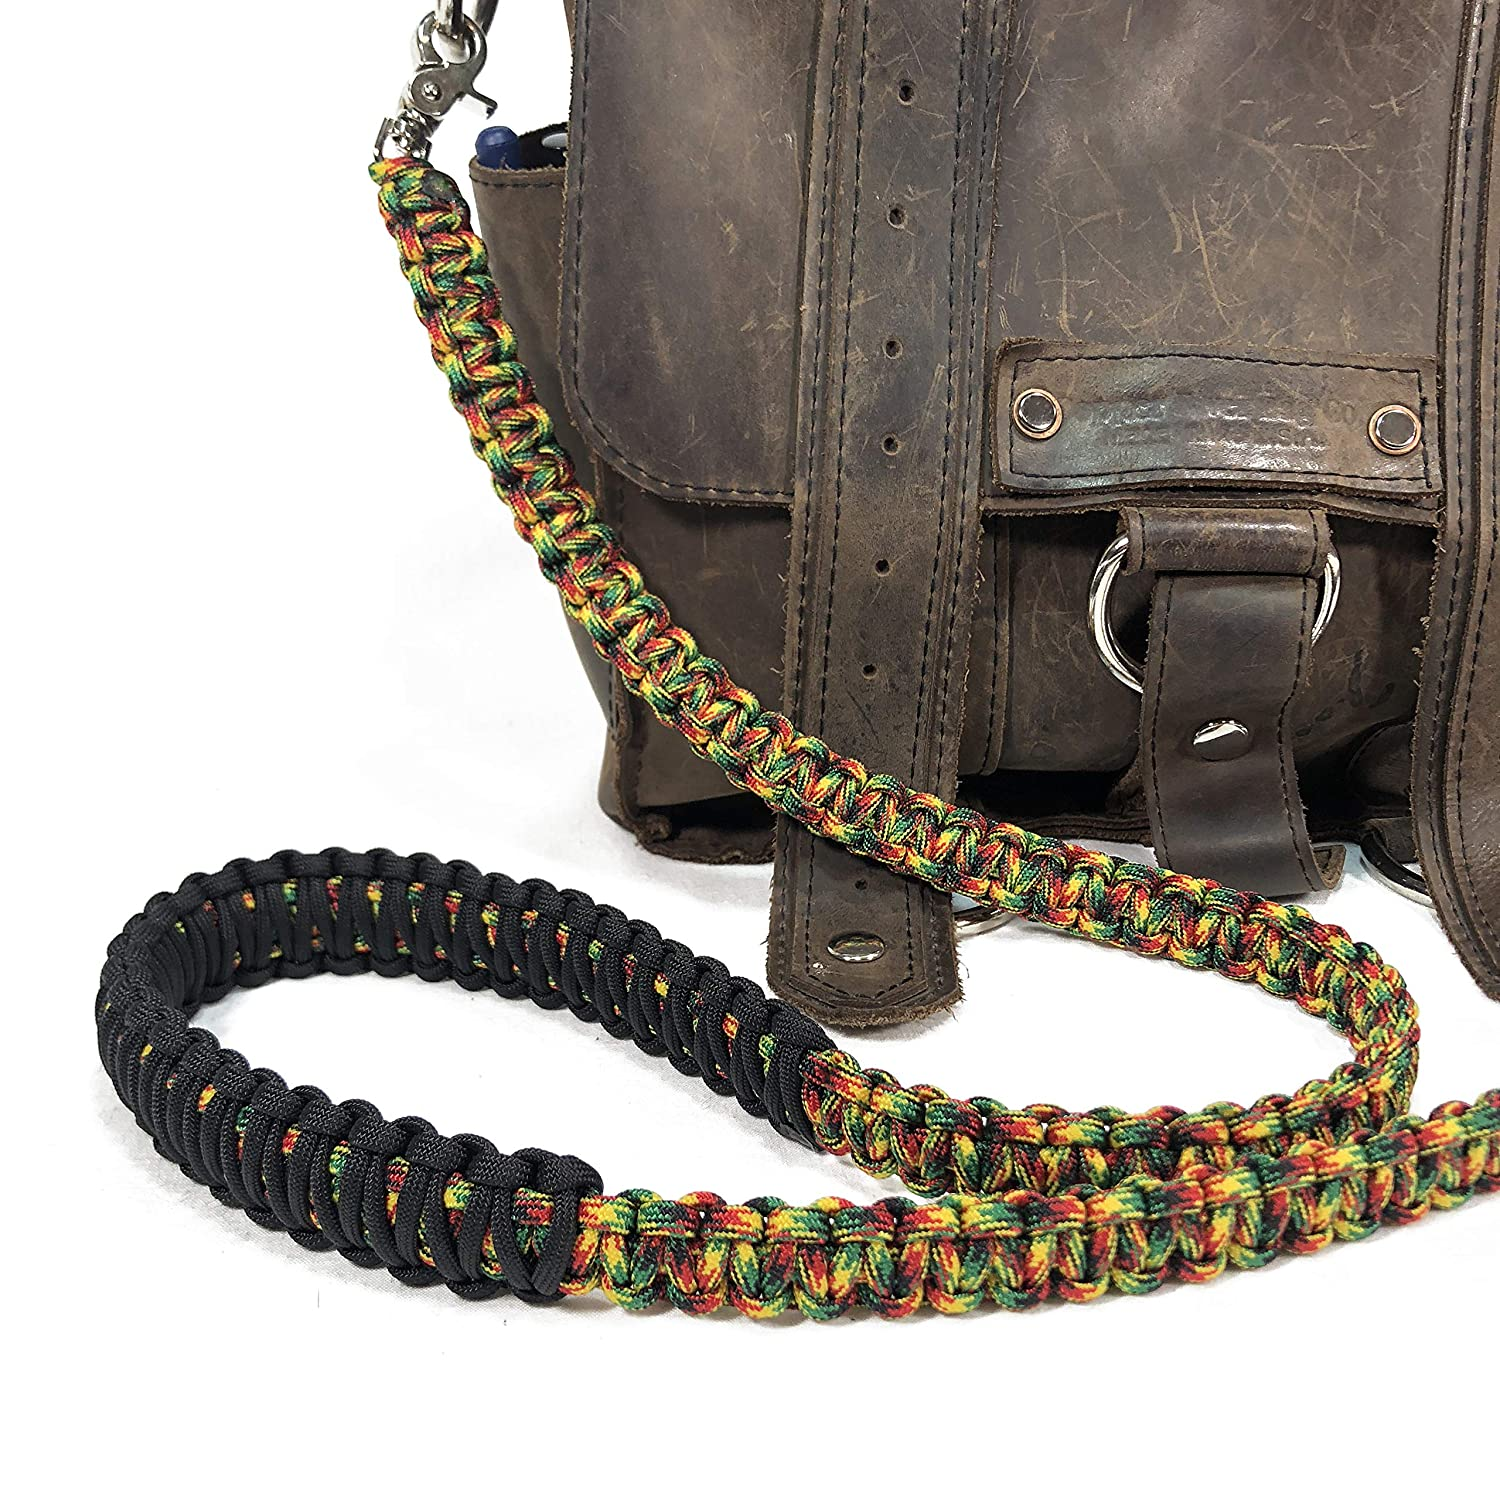 Jamaican Pattern Paracord 44 inch Cross Body Shoulder Strap Satchel Strap Lunch Bag Duffel Bag Handbag